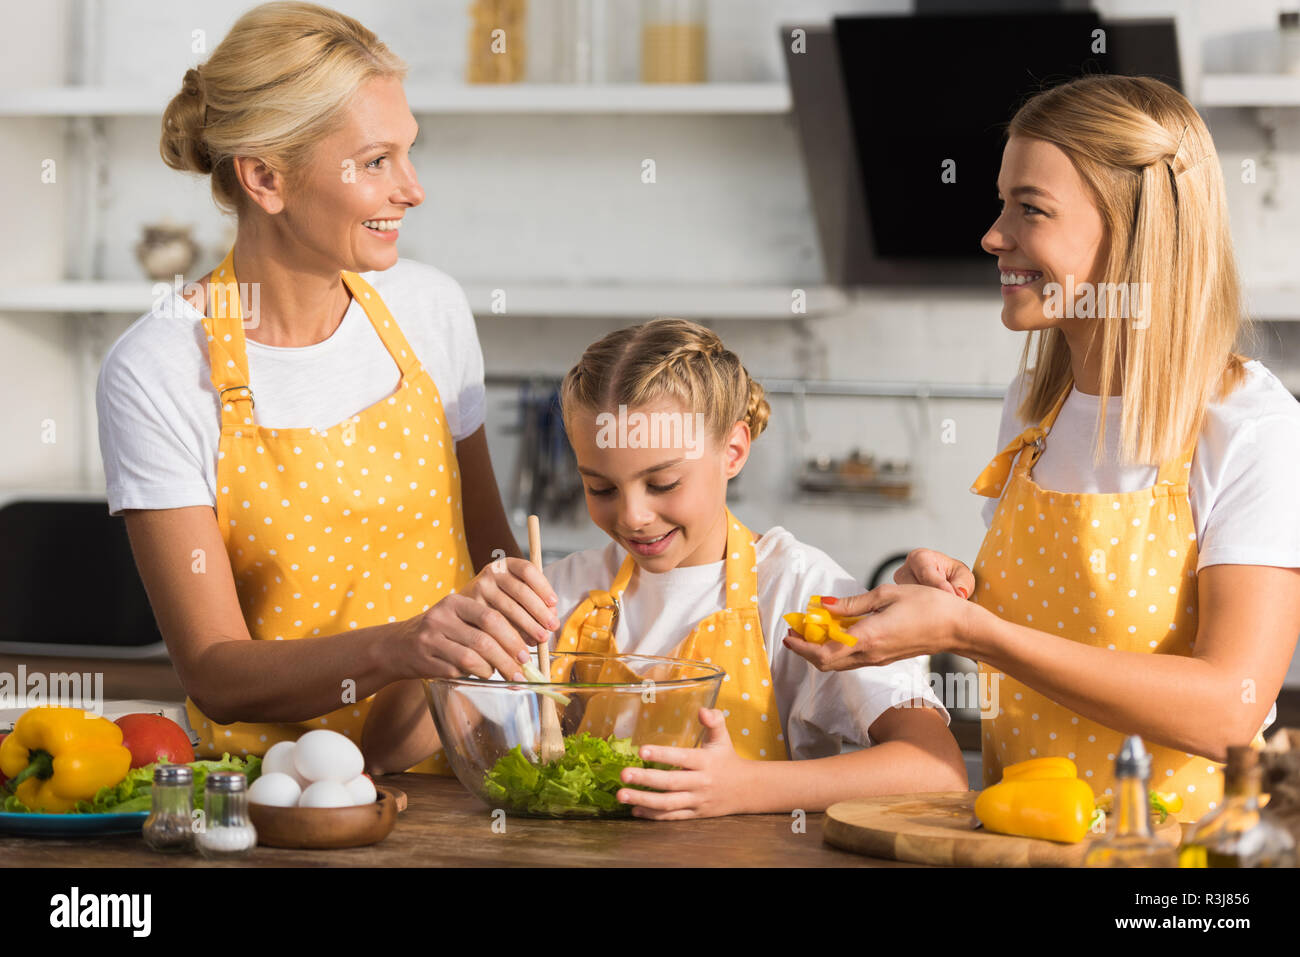 happy three generation family cooking vegetable salad together - Stock Image